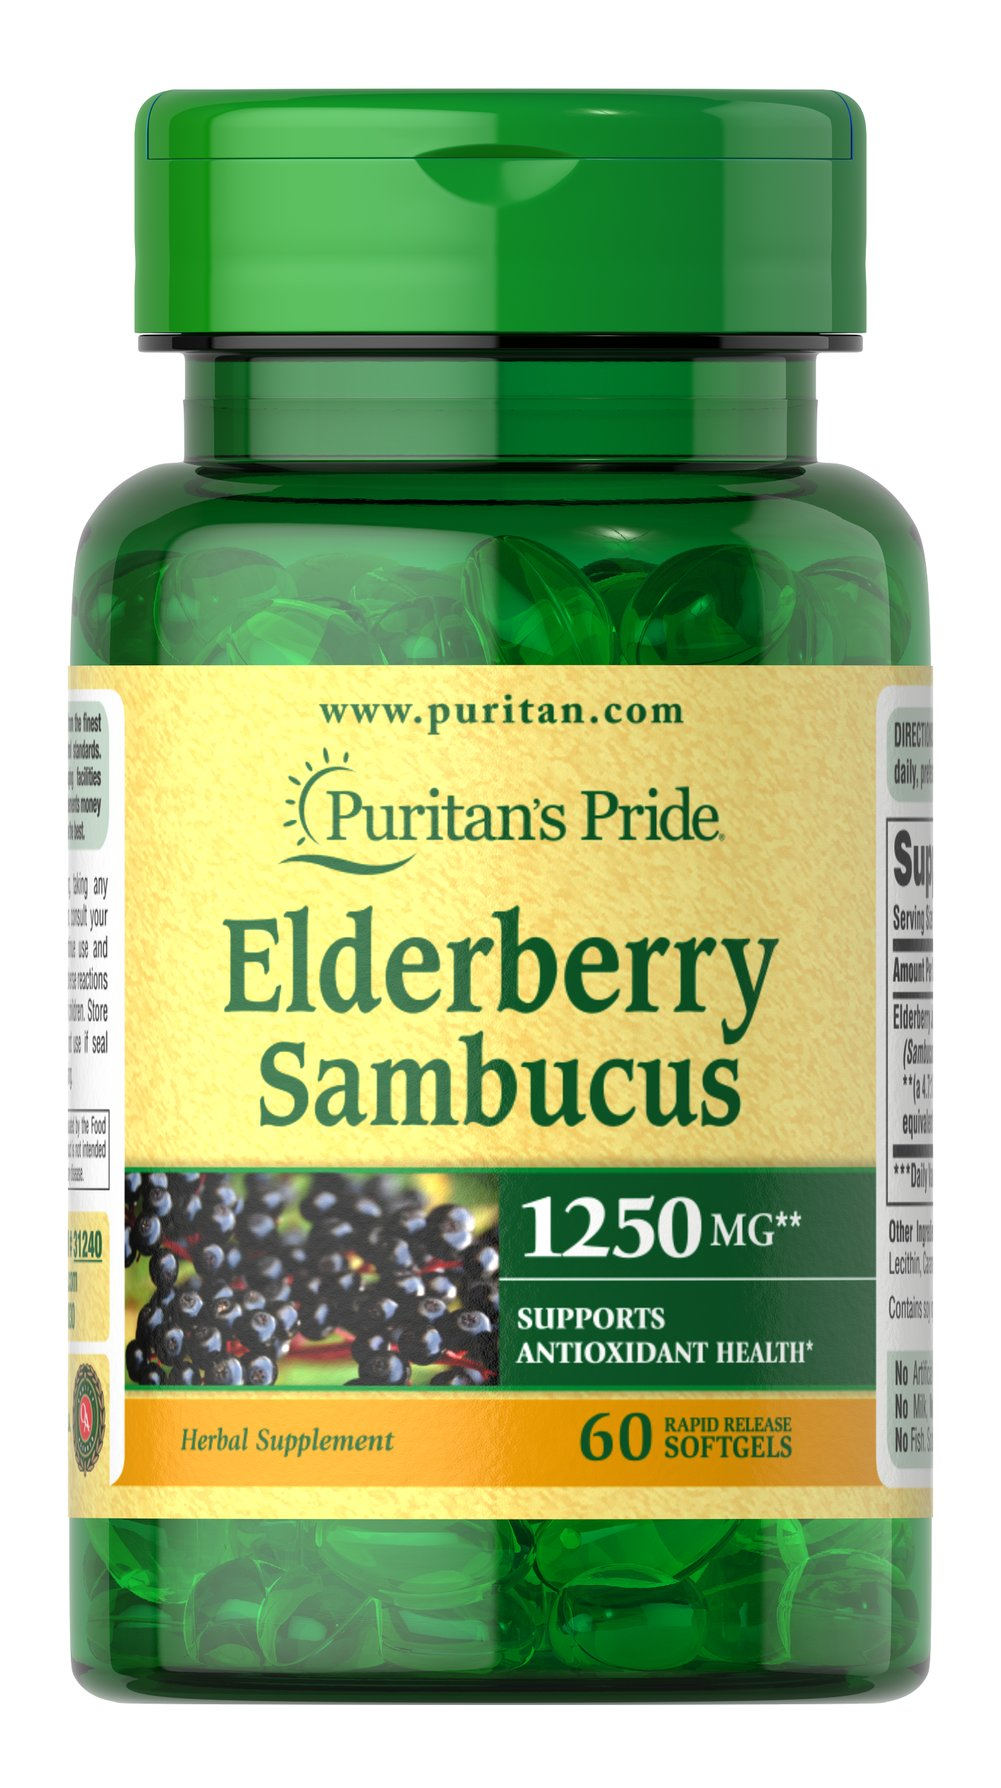 Elderberry Sambucus 1250 mg Thumbnail Alternate Bottle View